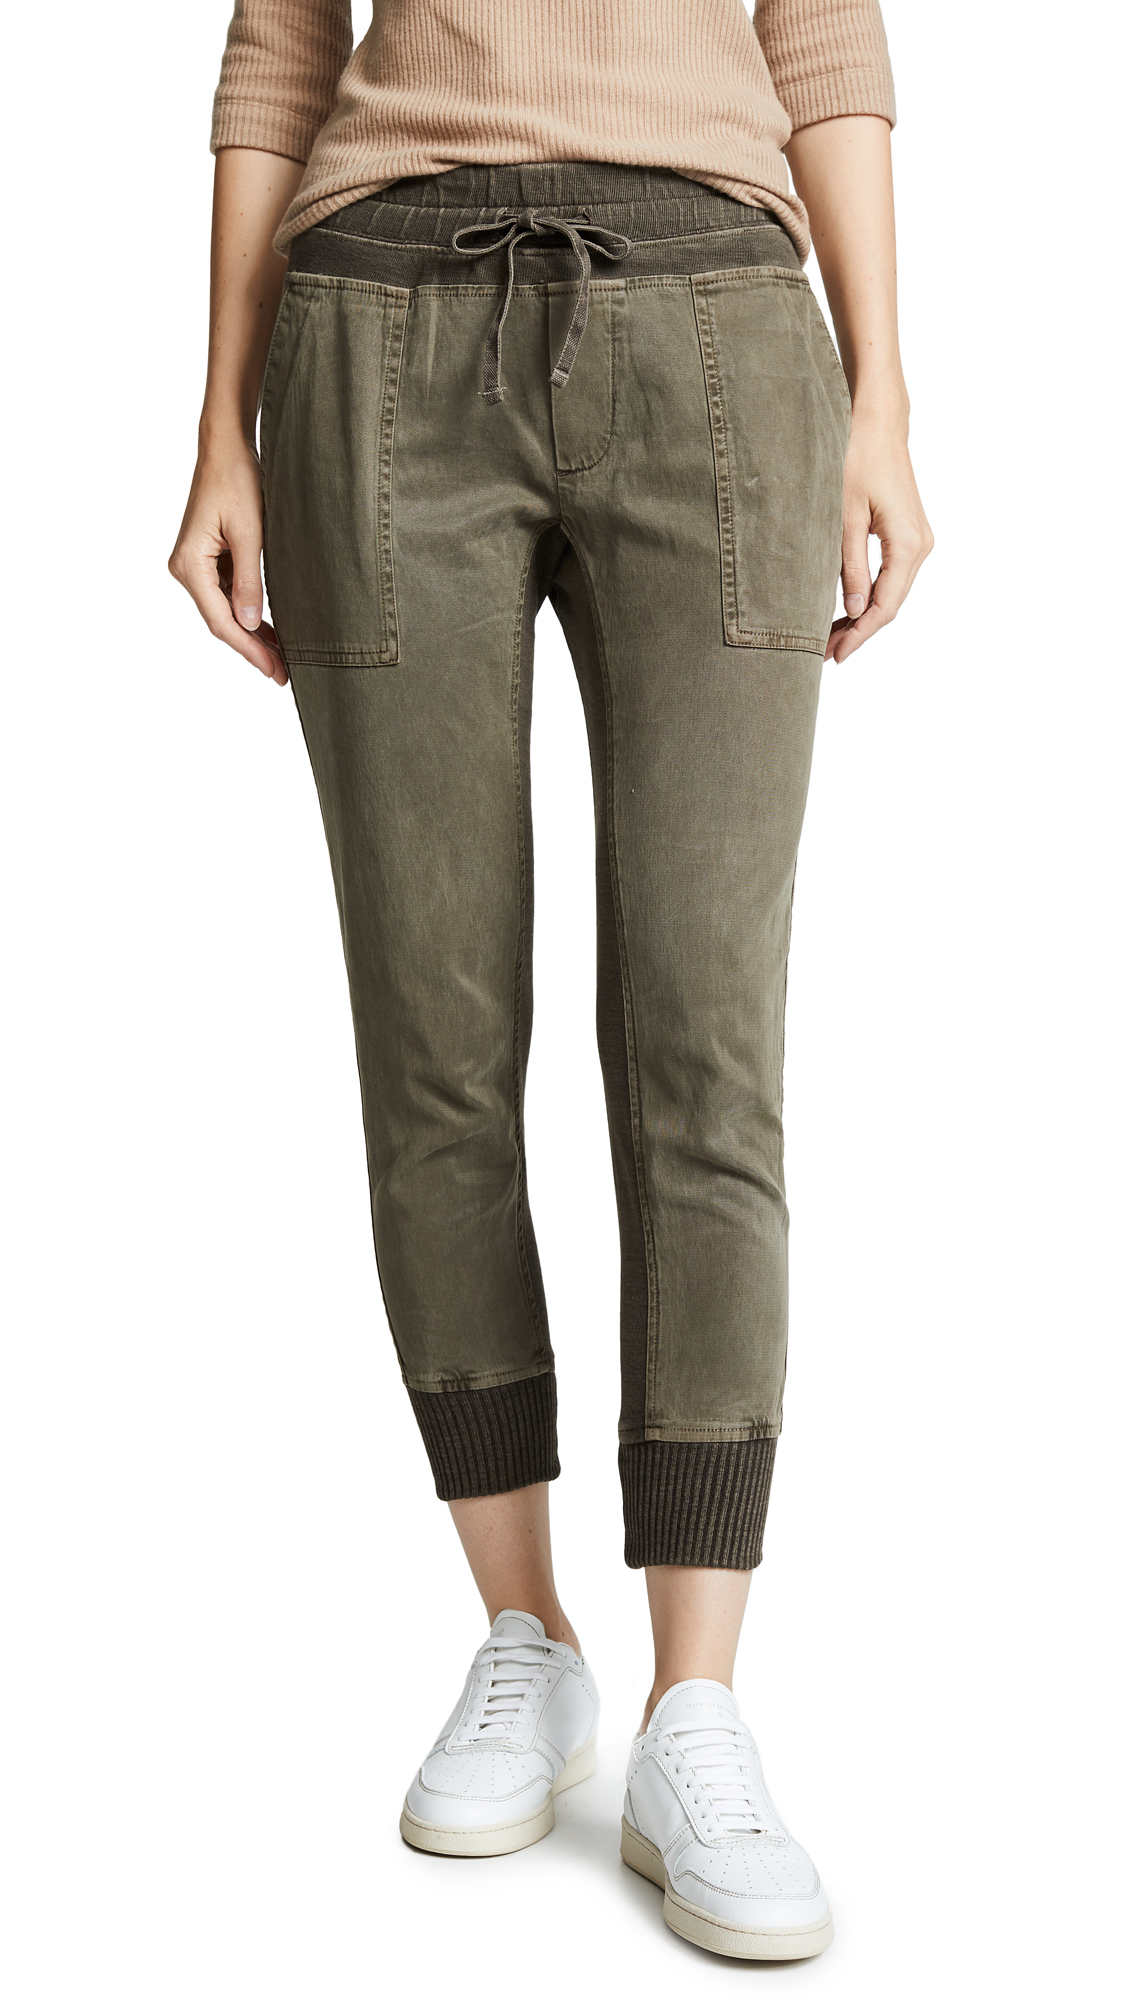 James Perse Mixed Media Pants